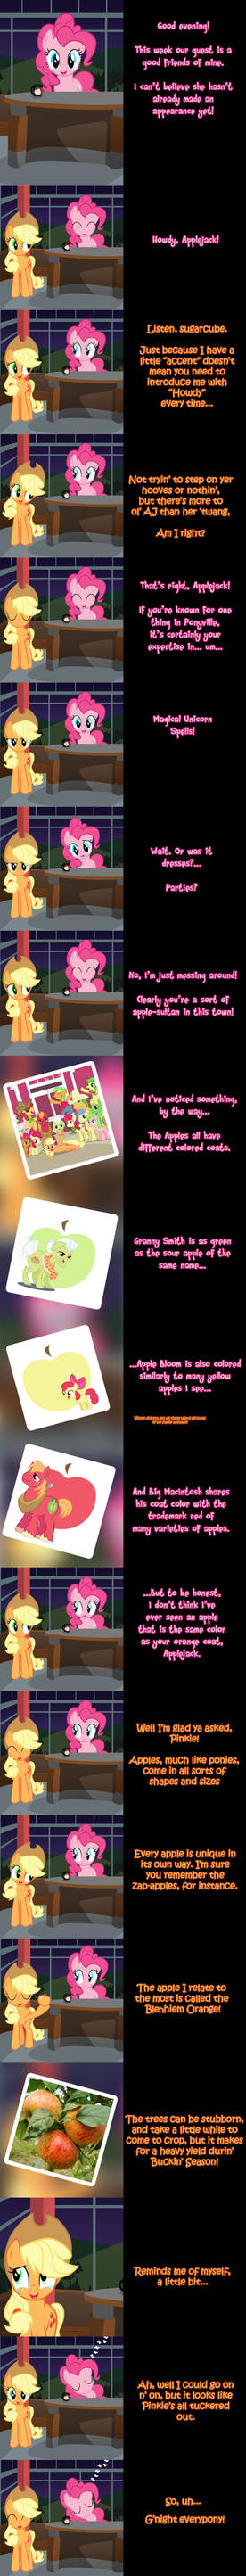 Pinkie Says Goodnight - Applejack's Apple, Jack.